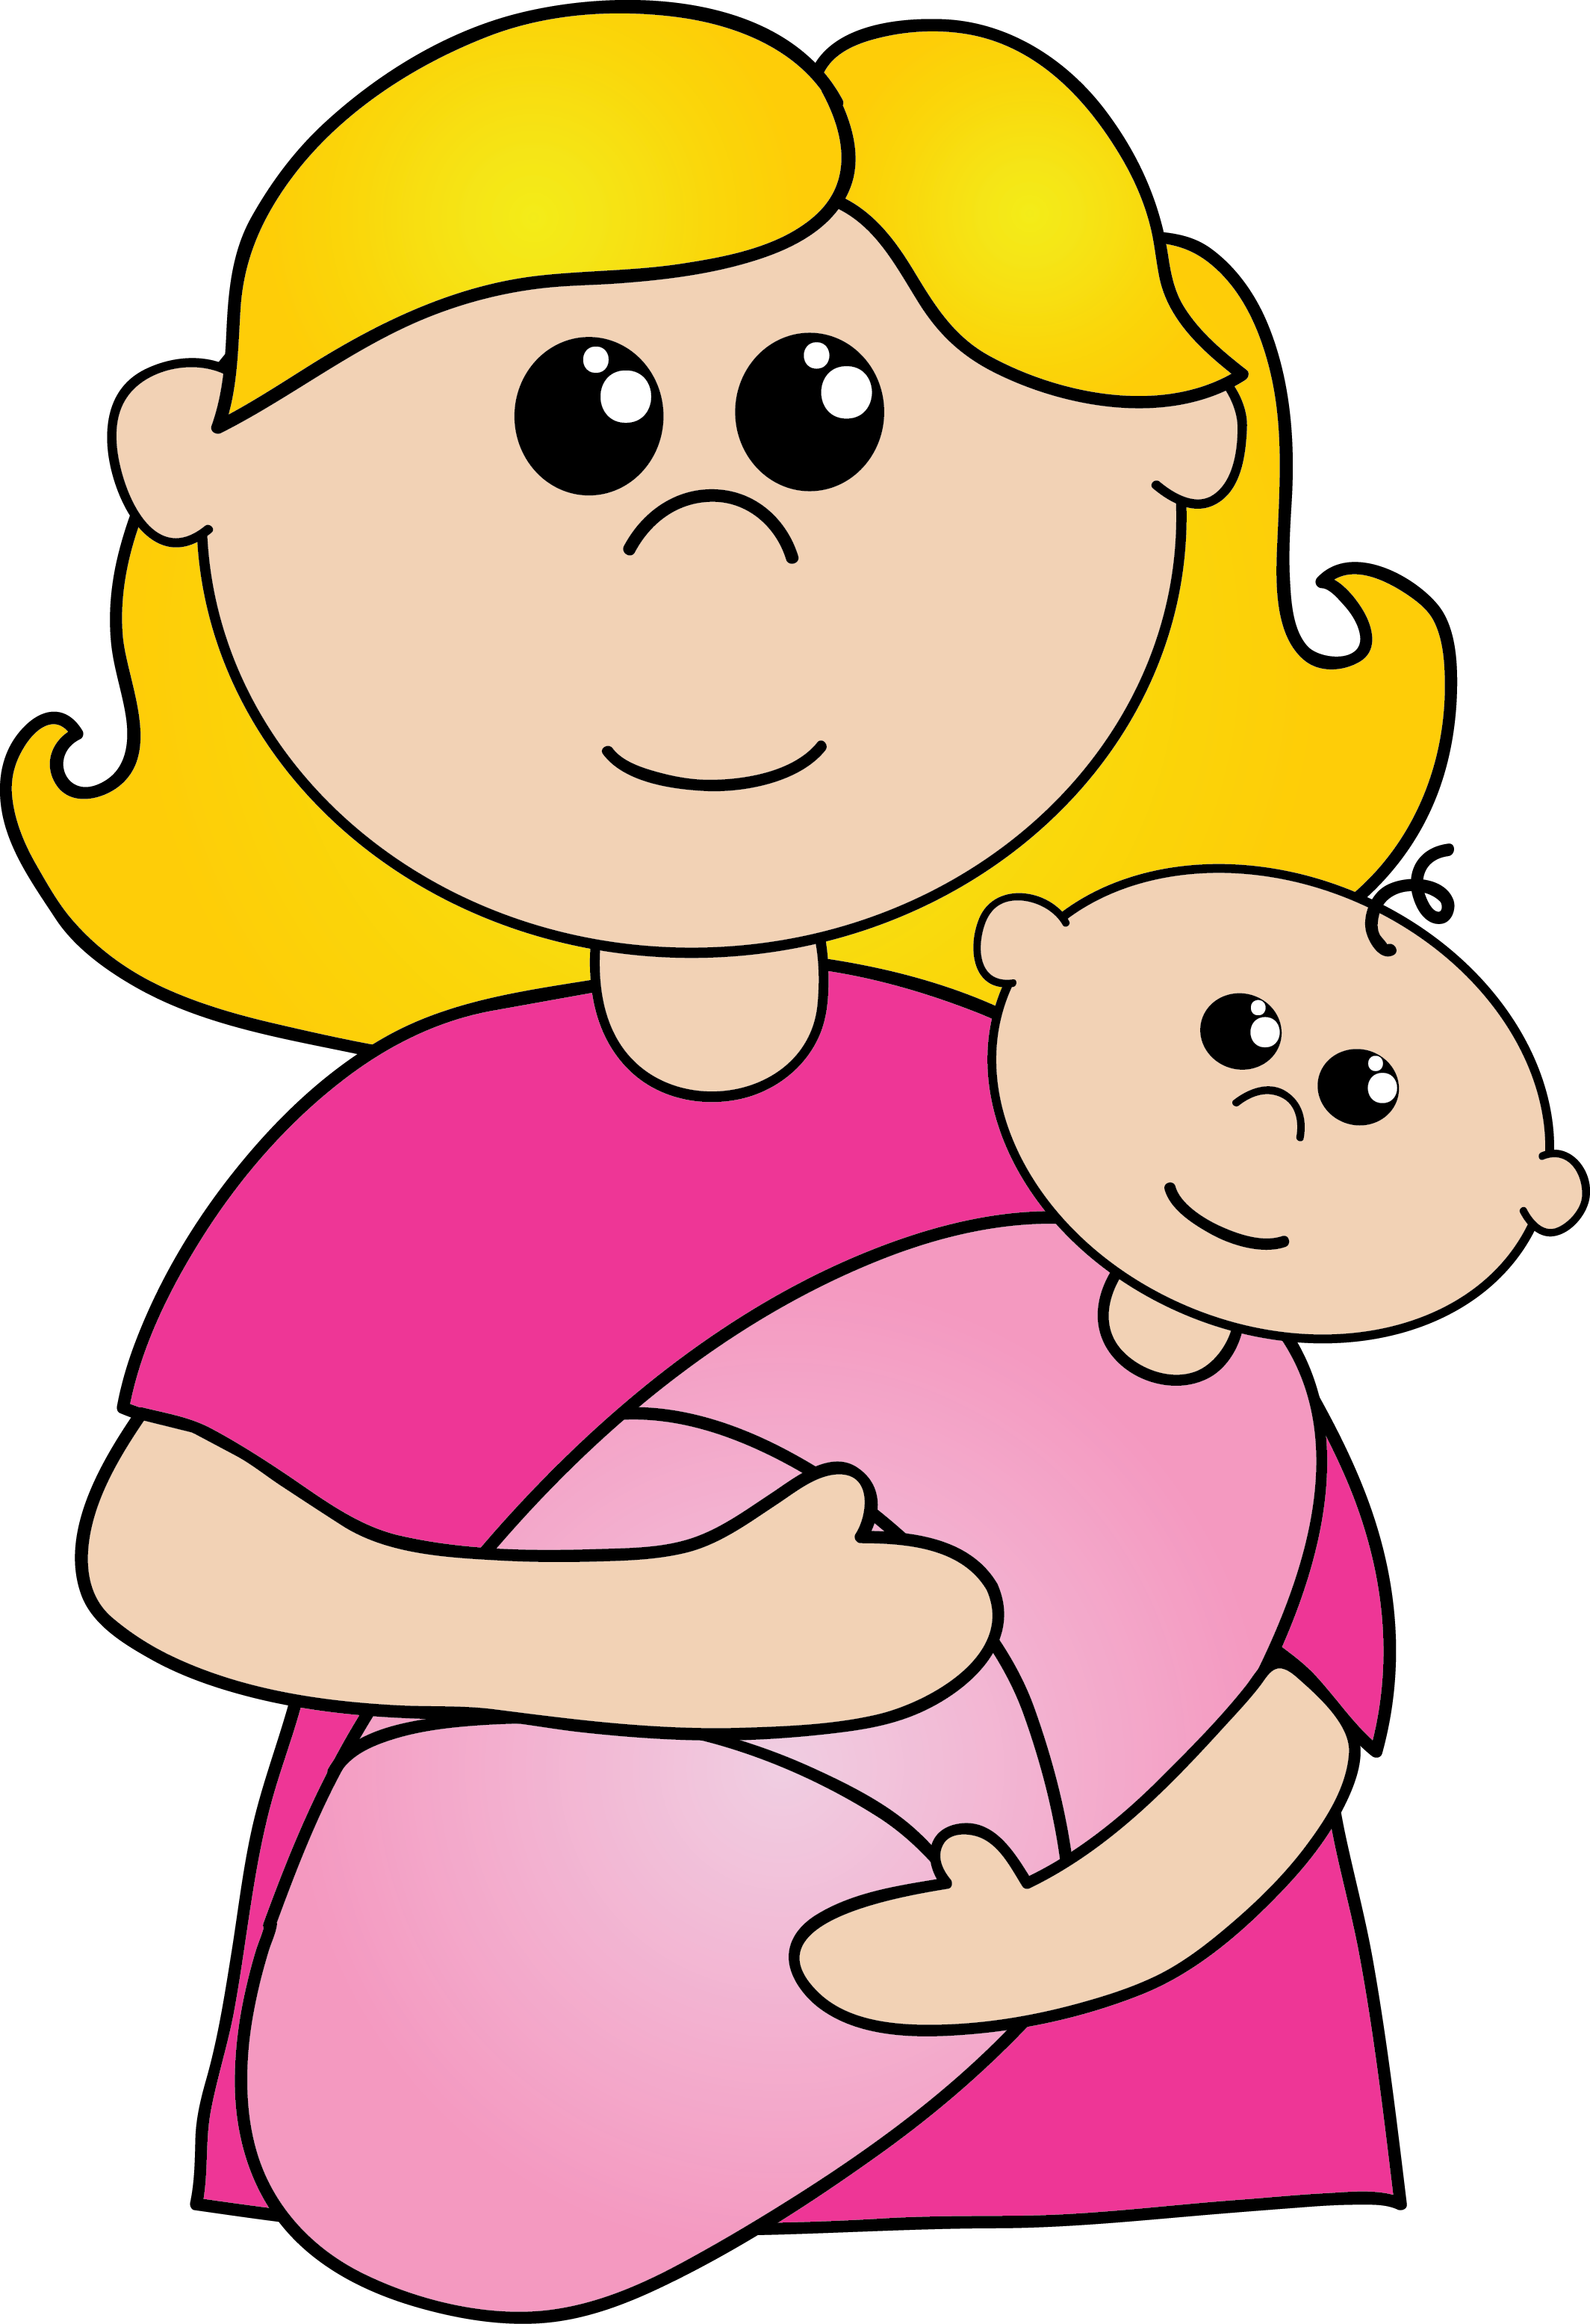 mom clip art free clipart panda free clipart images rh clipartpanda com working mom images clipart Mother Clip Art